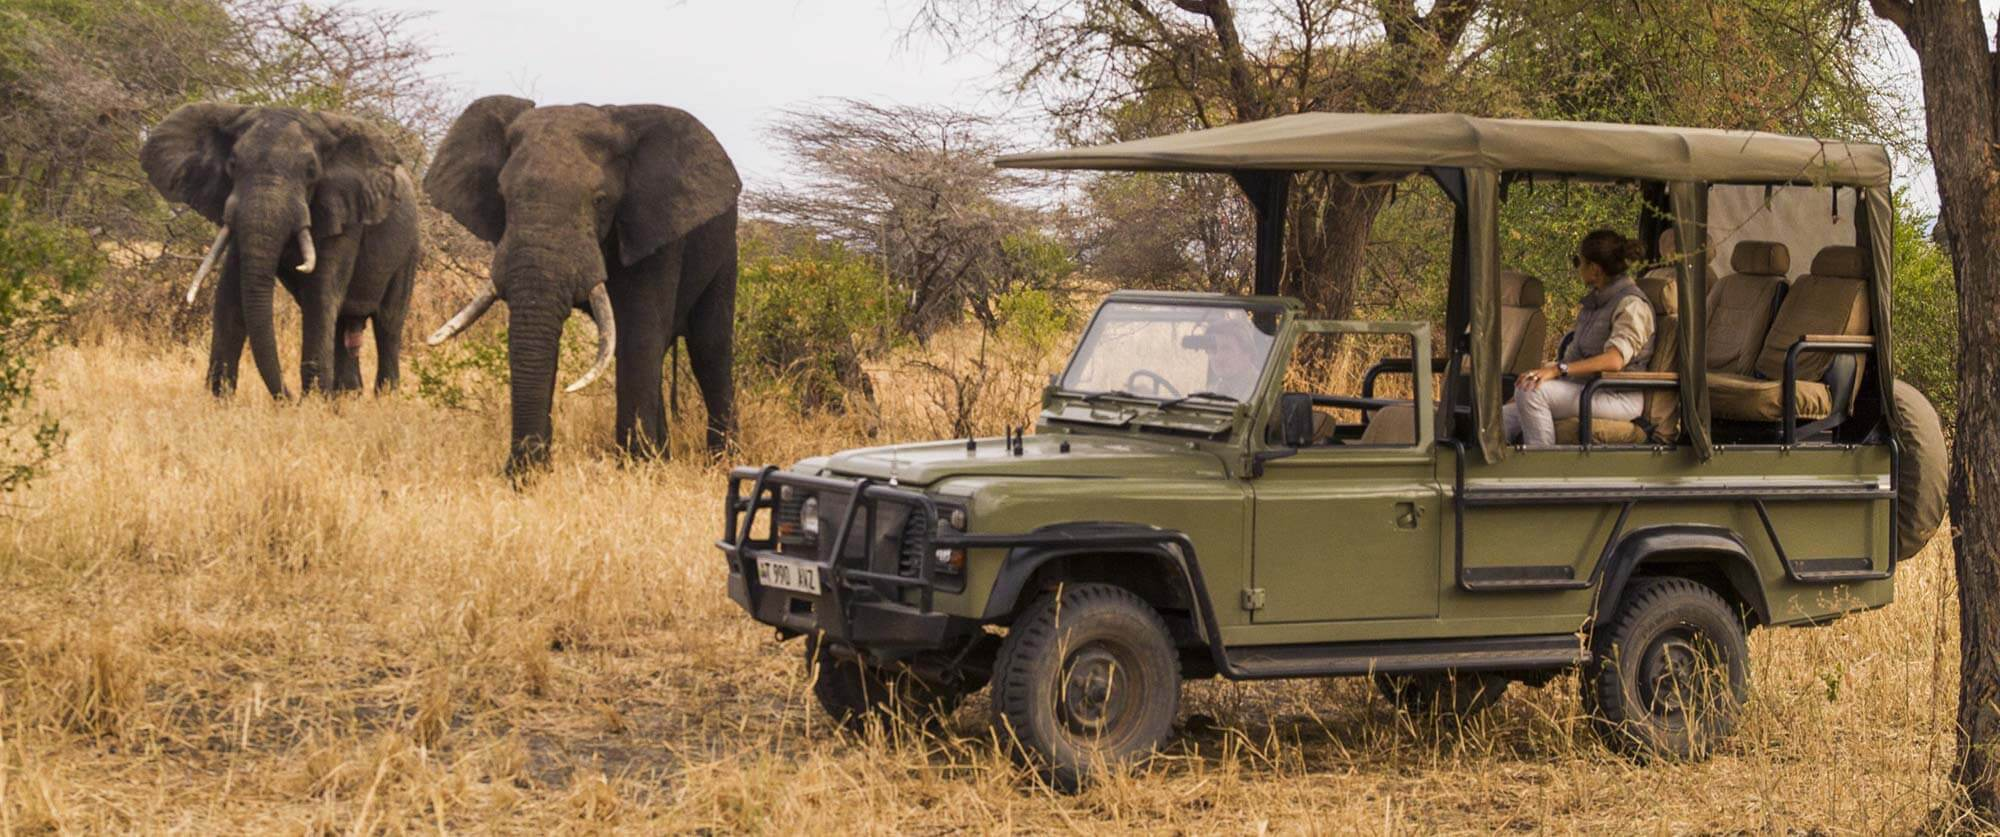 Elephants on Game Drive - Little Chem Chem - Tanzania Safari Tours: Ultimate Northern Circuit Package